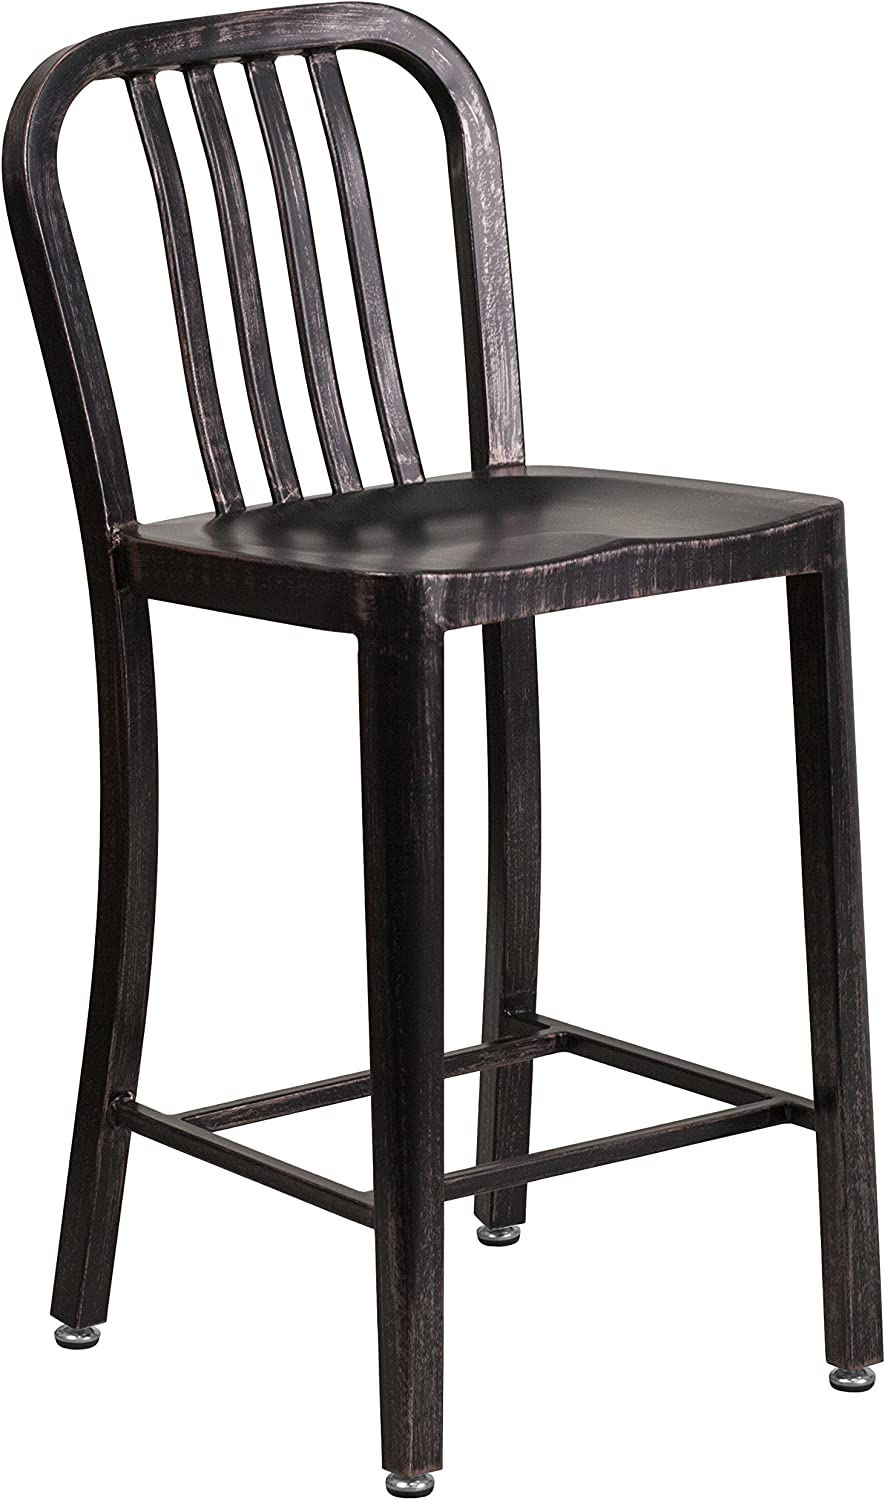 "Flash Furniture Commercial Grade 24"" High Black-Antique Gold Metal Indoor-Outdoor Counter Height Stool with Vertical Slat Back"